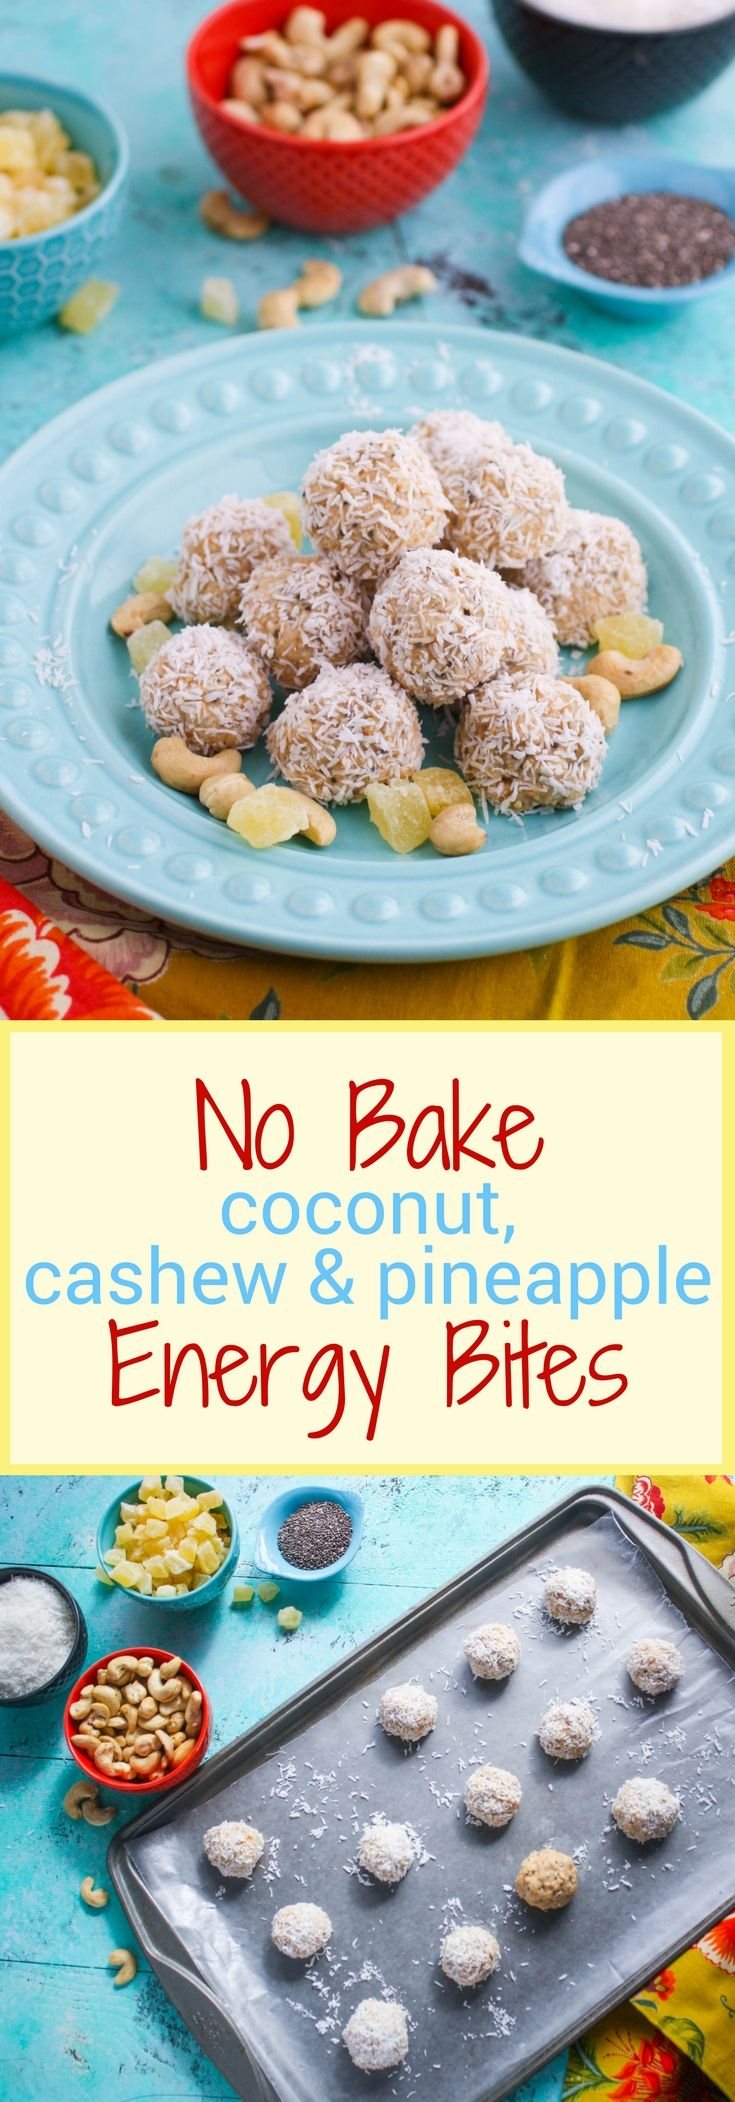 No bake coconut, cashew, and pineapple energy bites make a wonderful, healthy snack. You'll enjoy these no bake energy bites any time of day! #snack #chia #healthytreats #healthysnacks